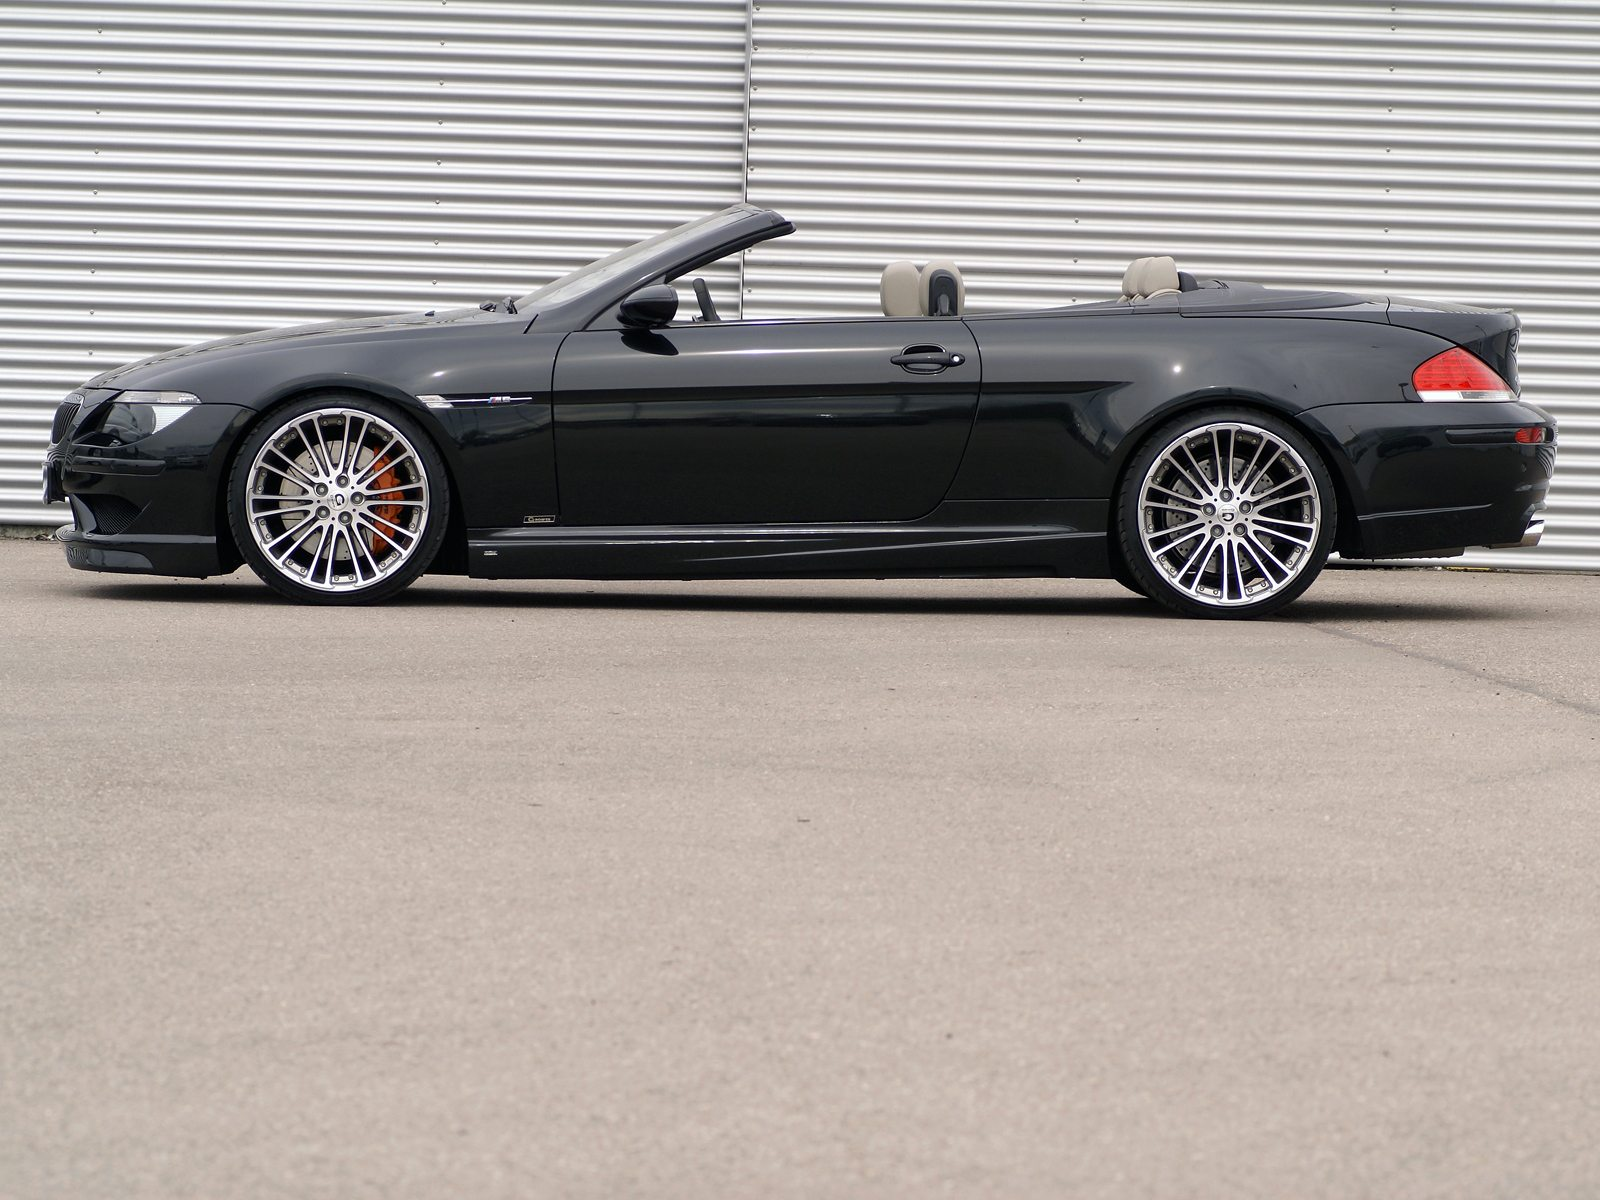 G Power BMW M6 Hurricane Convertible (E64) photo 55739